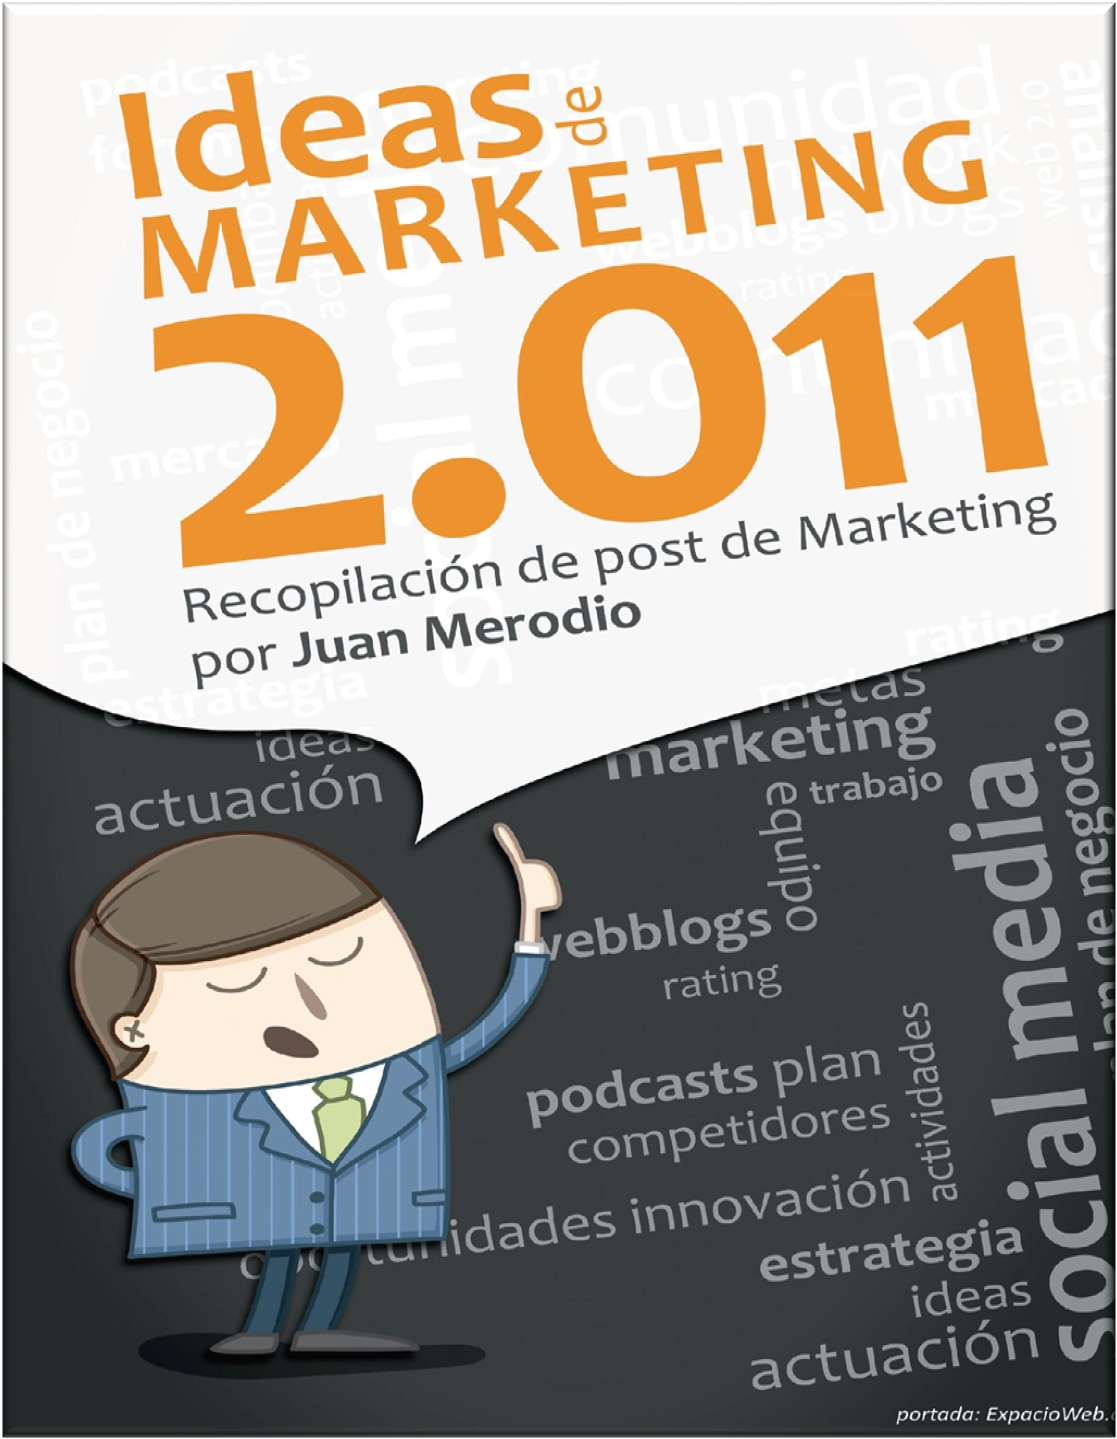 Libros Digital Libros Marketing Digital Consultora De Marketing Libros